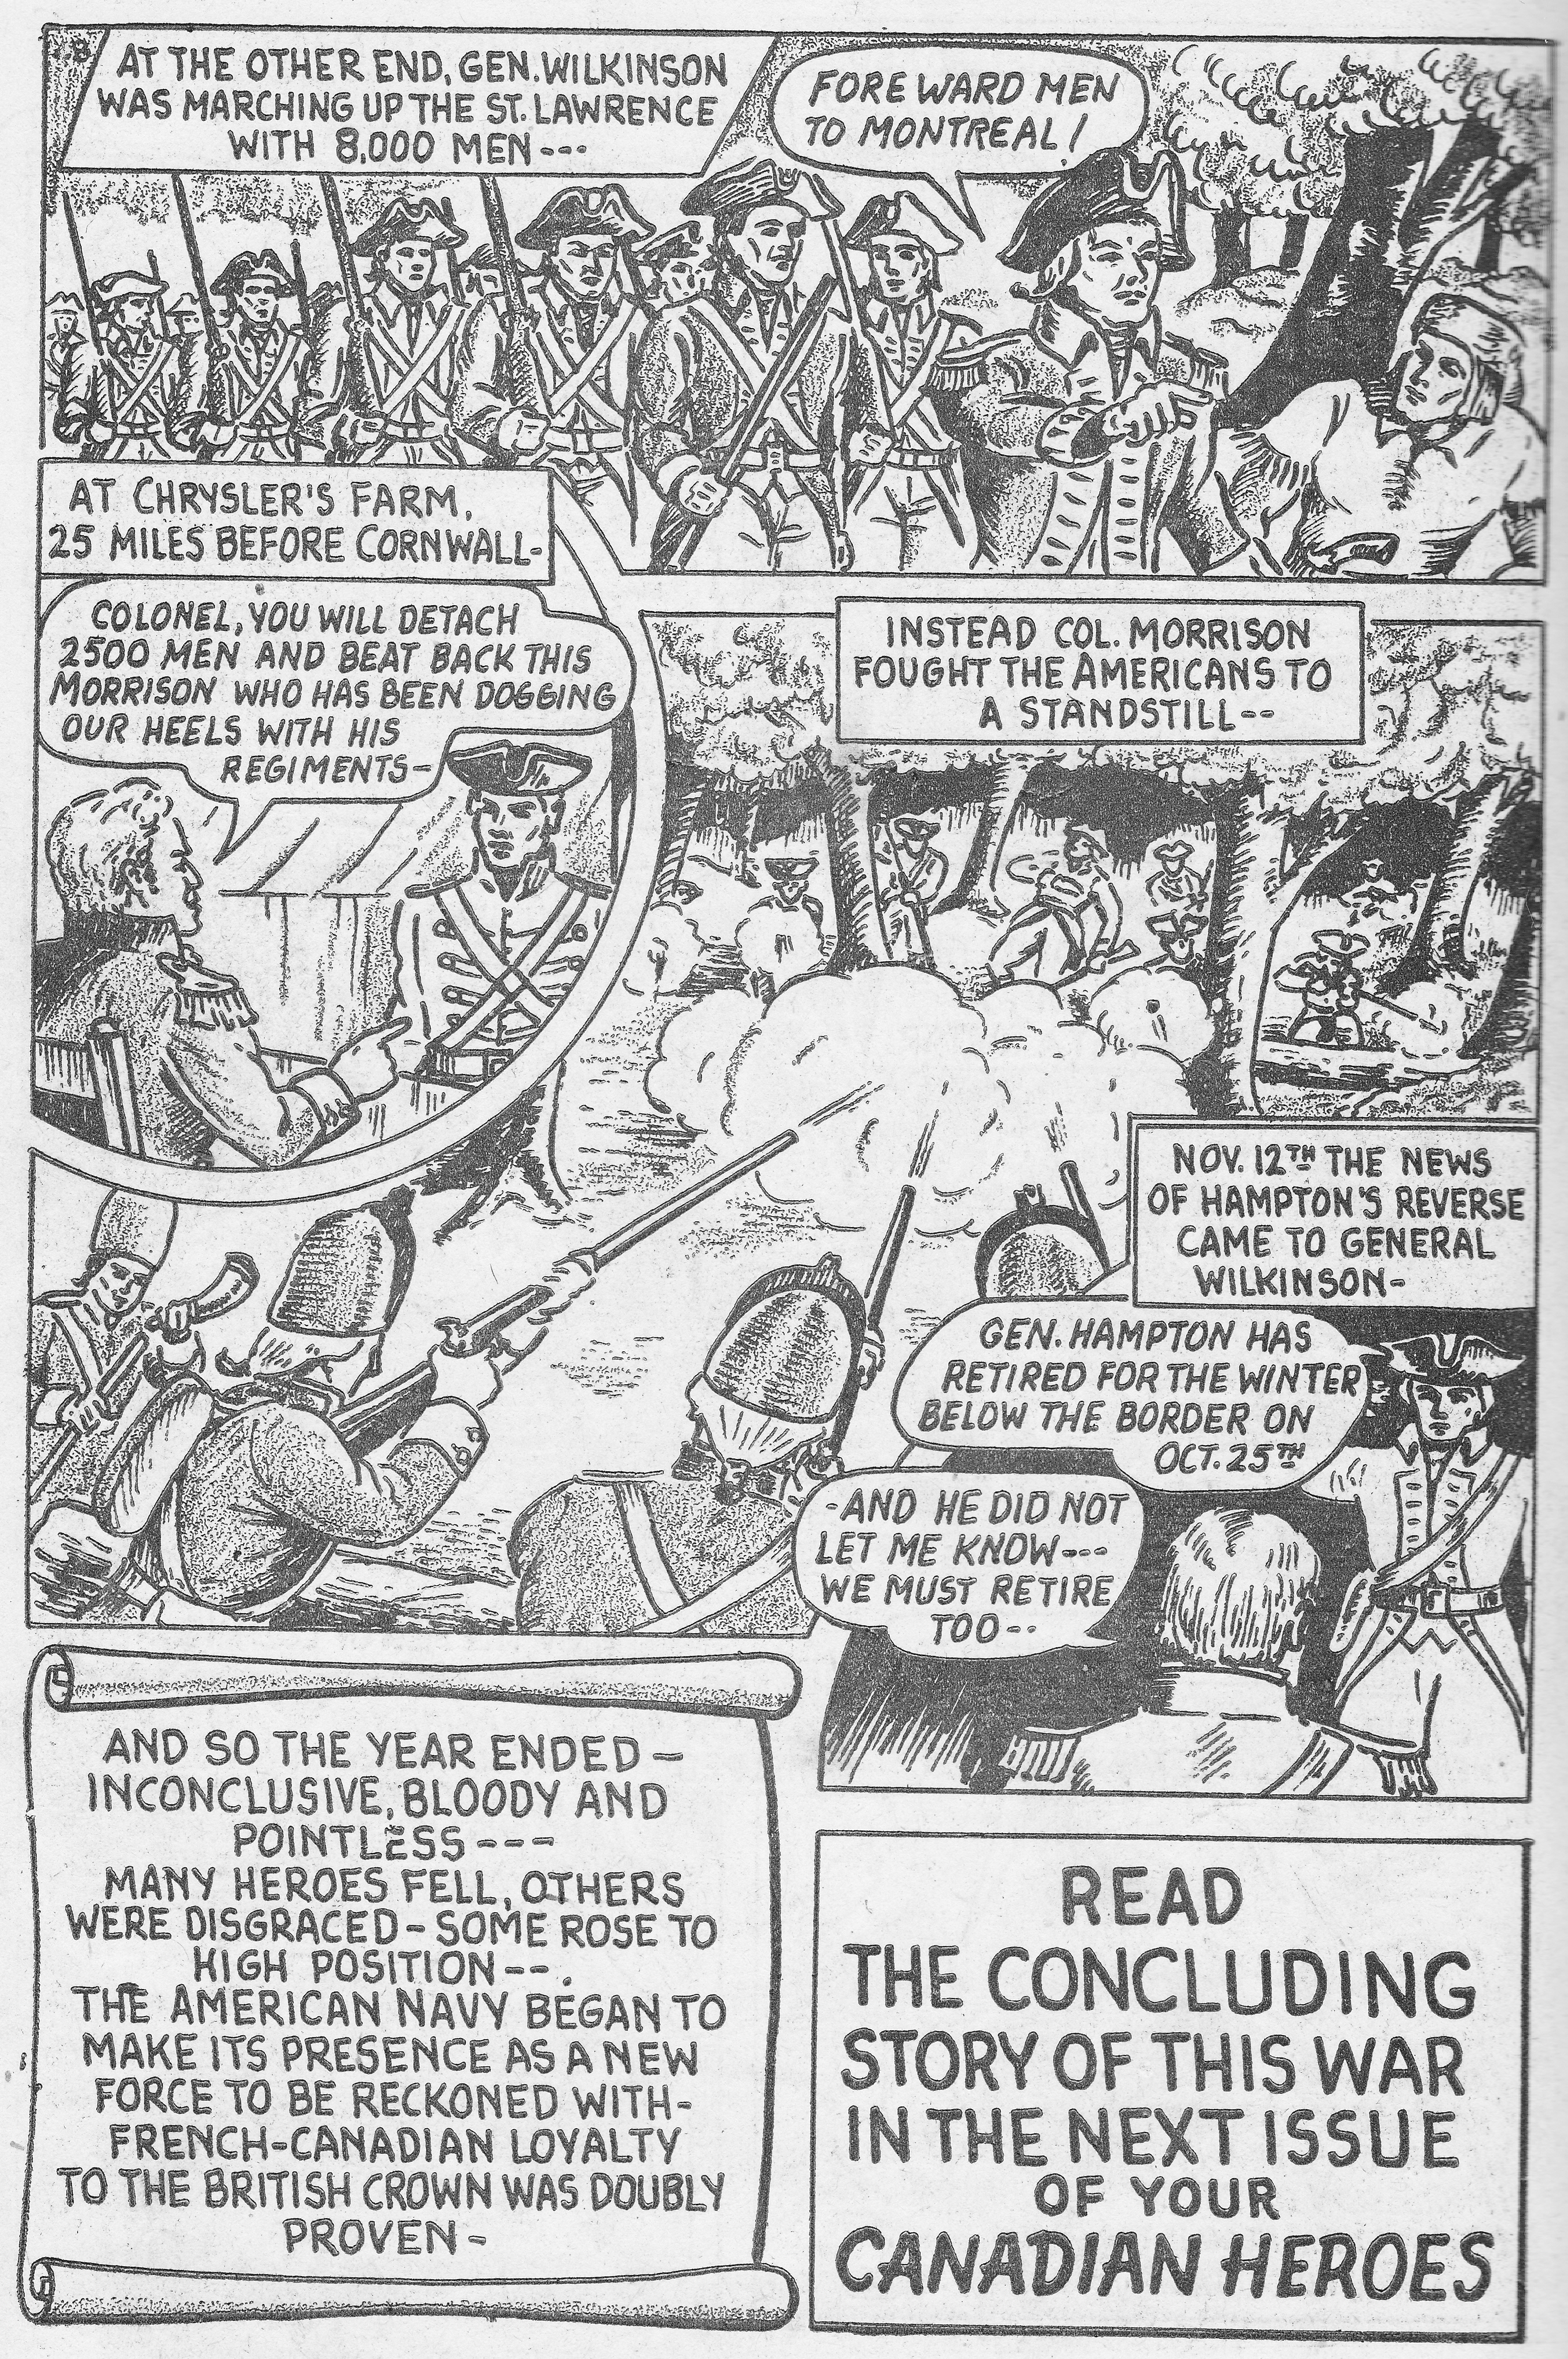 C:\Users\Robert\Documents\CARTOONING ILLUSTRATION ANIMATION\IMAGE CARTOON\IMAGE CARTOON S\STORY, HISTORY OF CANADA, Canadian Heroes, 3-1, Dec 1943, 48.jpg